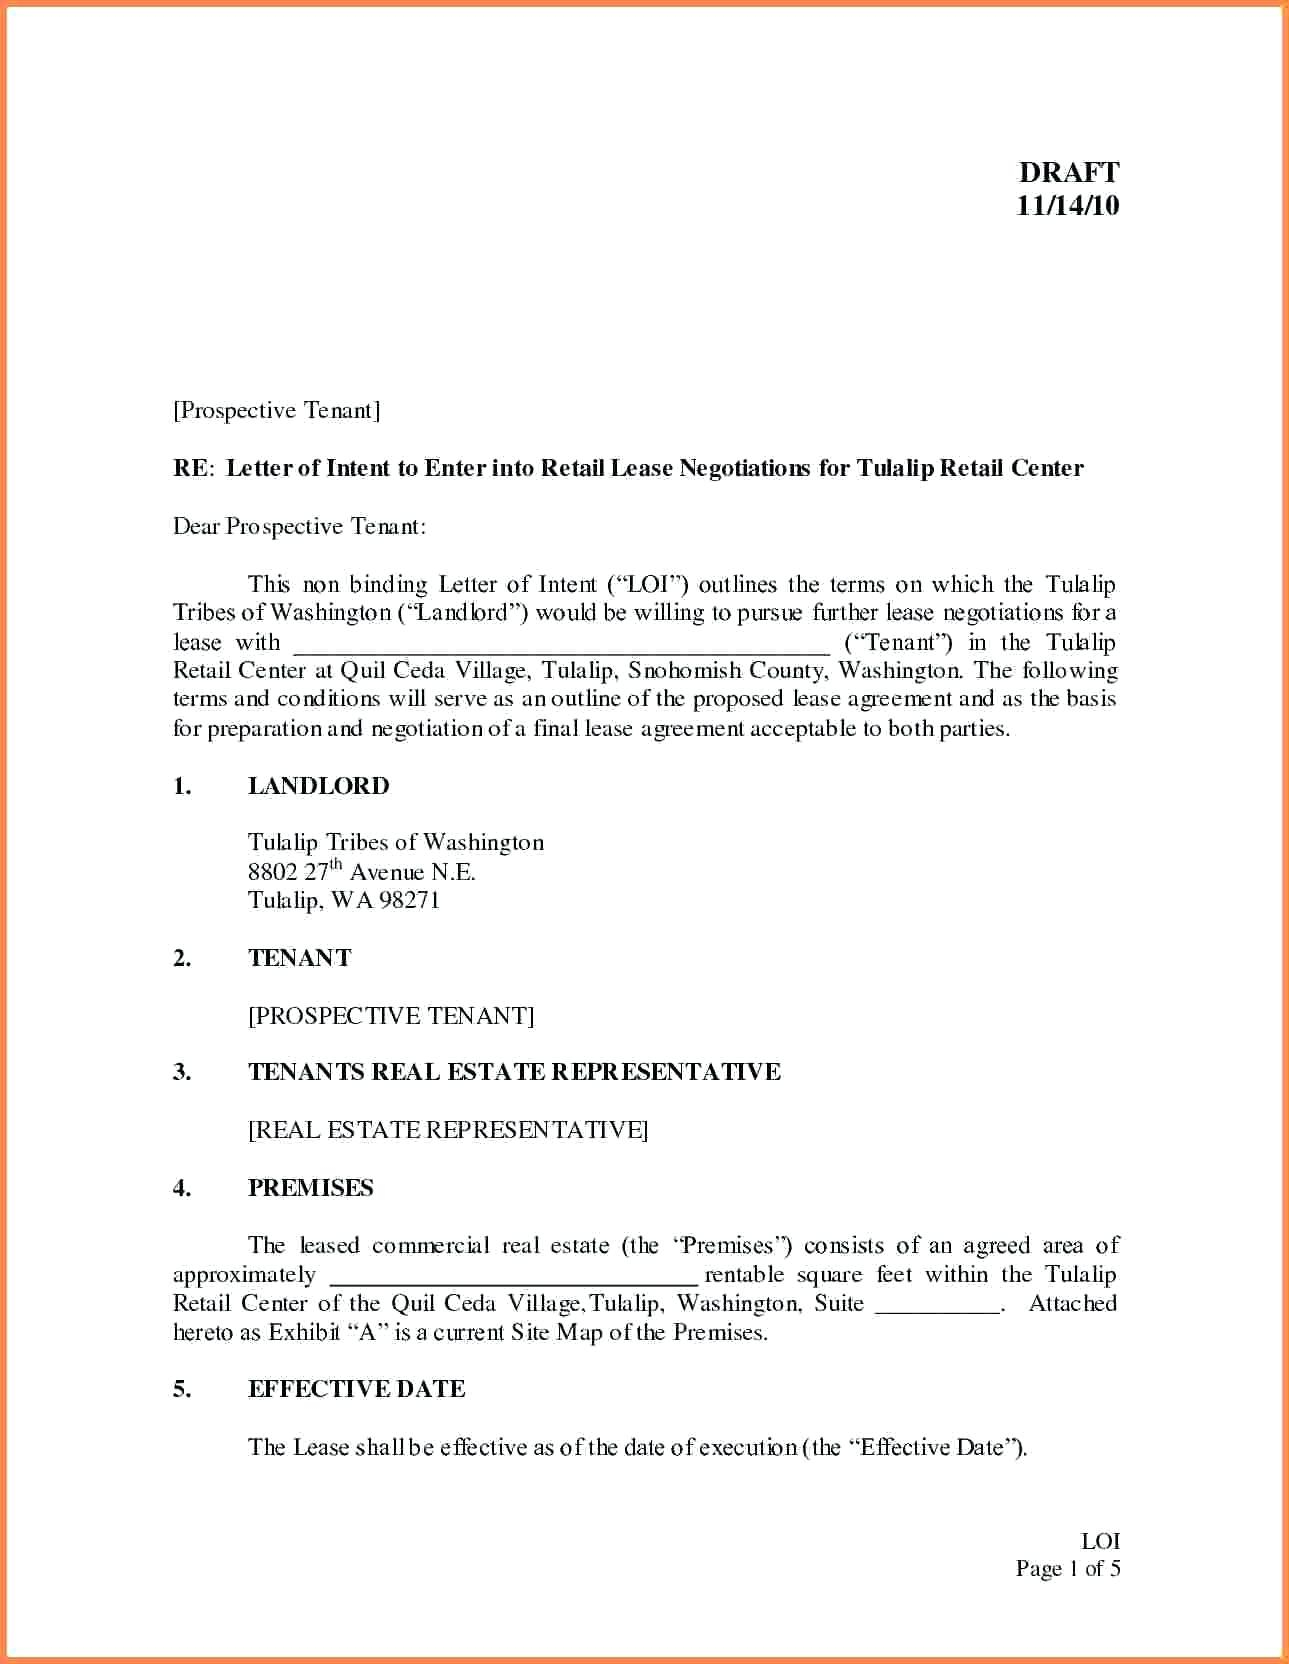 Free Real Estate Letter Of Intent Template - Templatemercial Real Estate Letter Intent to Lease for Space